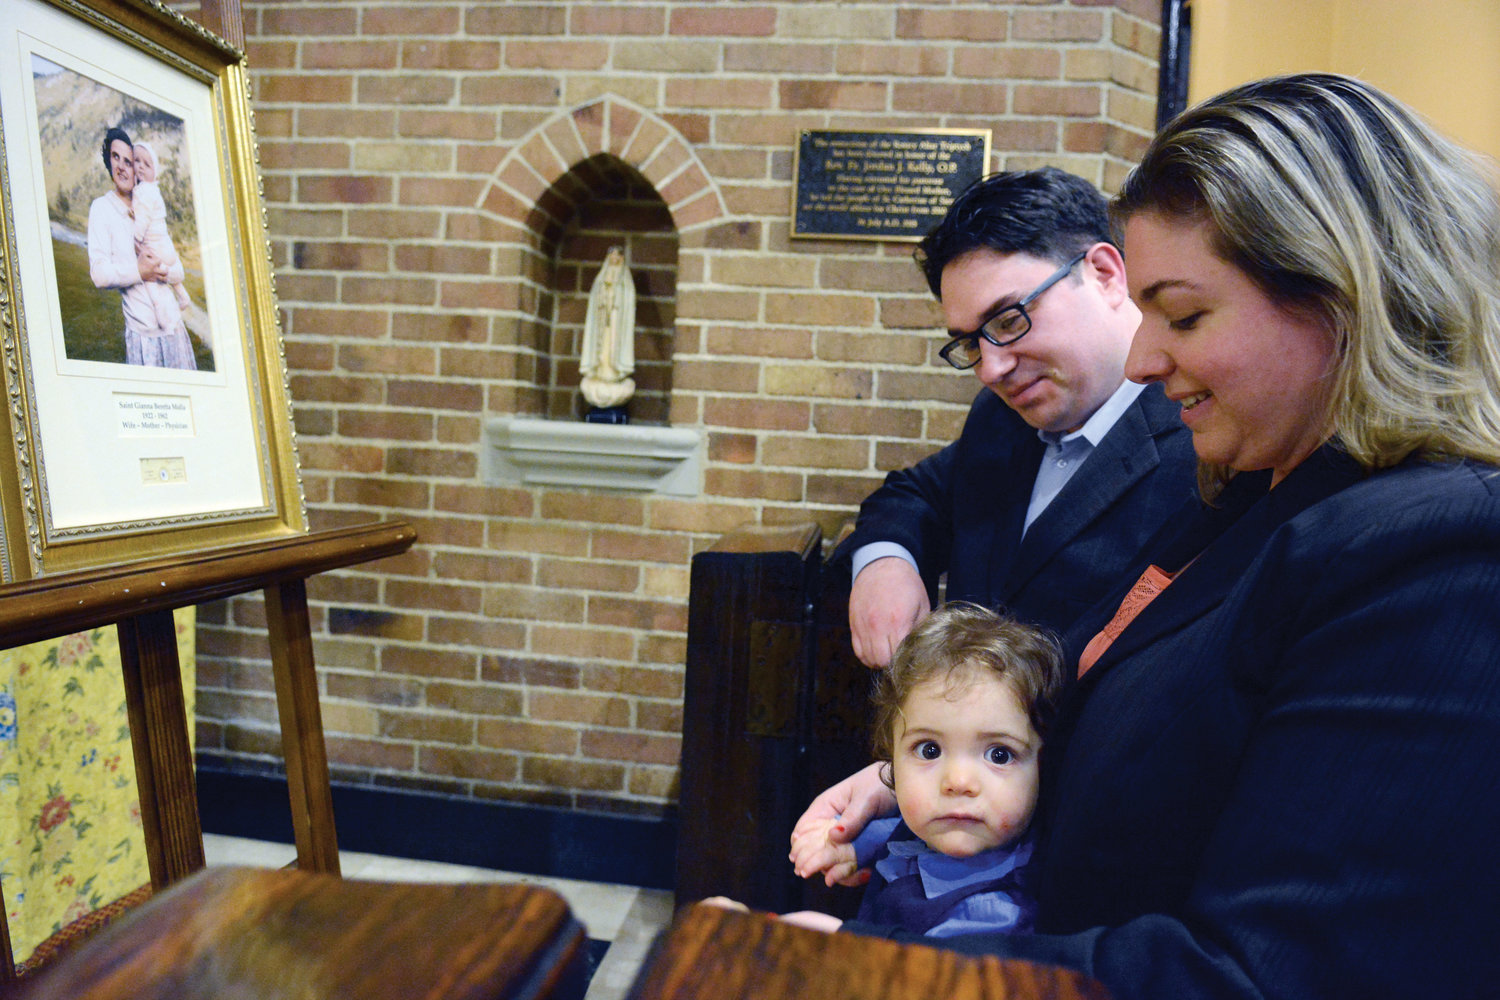 Jason and Carrie Caminiti kneel with their 14-month-old son Christian during veneration in front of a framed photo and relic of St. Gianna Beretta Molla at St. Catherine of Siena Church in Manhattan May 16.